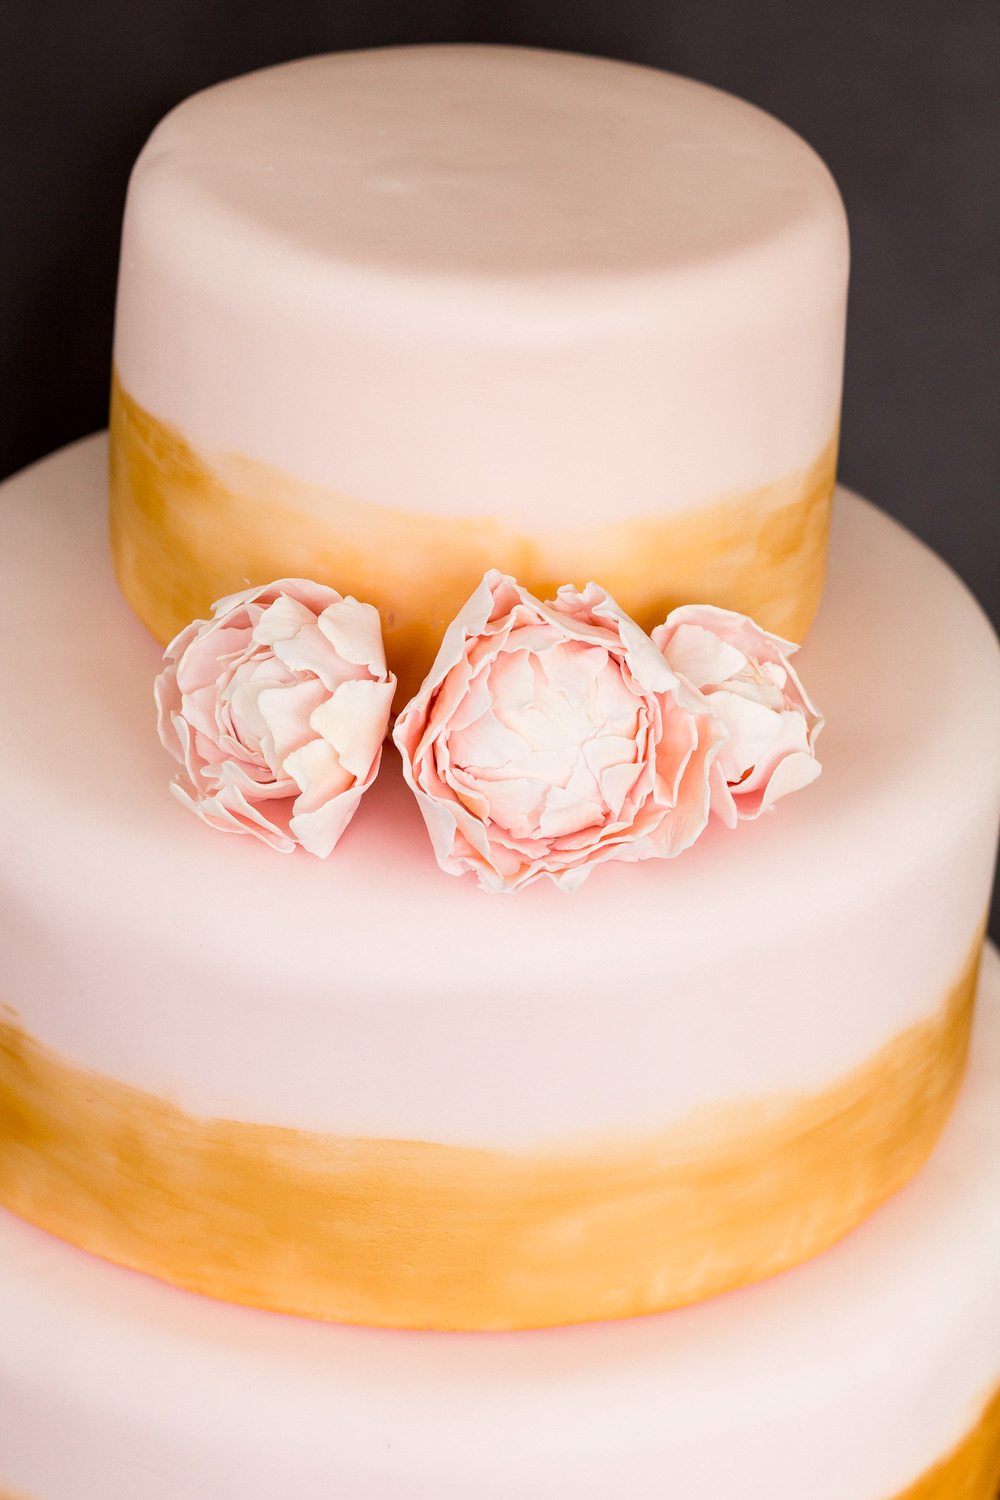 Wedding Cake3 - Bluch Pink and Gold Cake.jpg